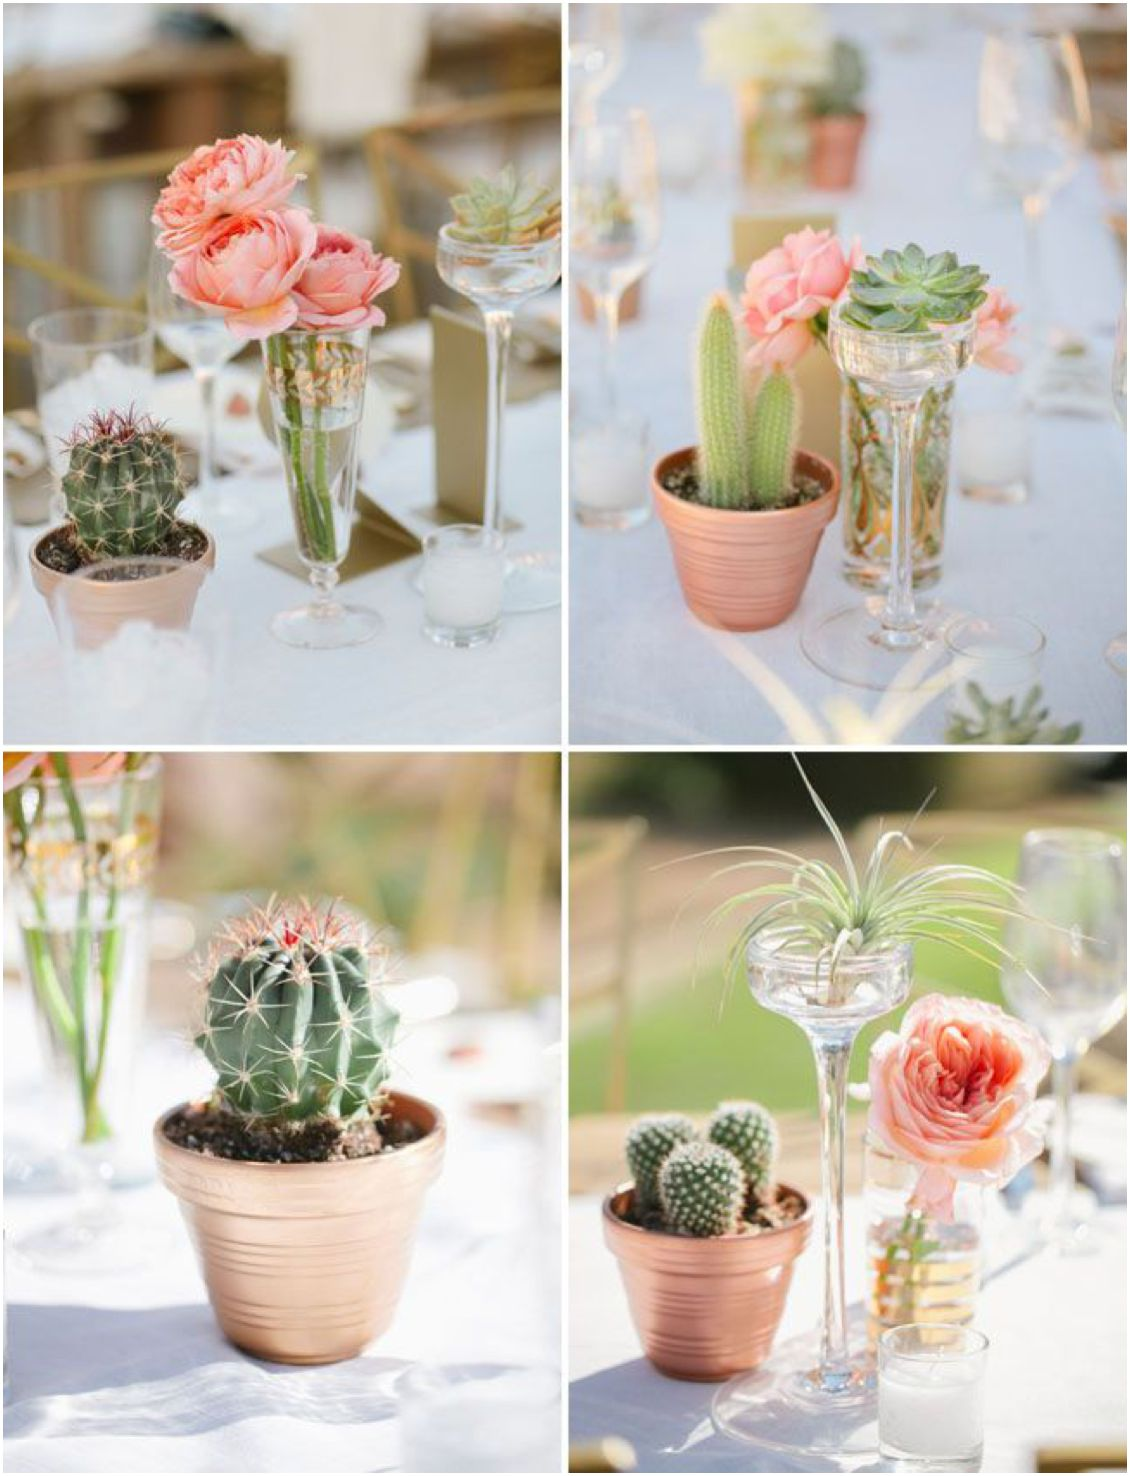 wedding flower ideas succulent ideas pink book weddings. Black Bedroom Furniture Sets. Home Design Ideas